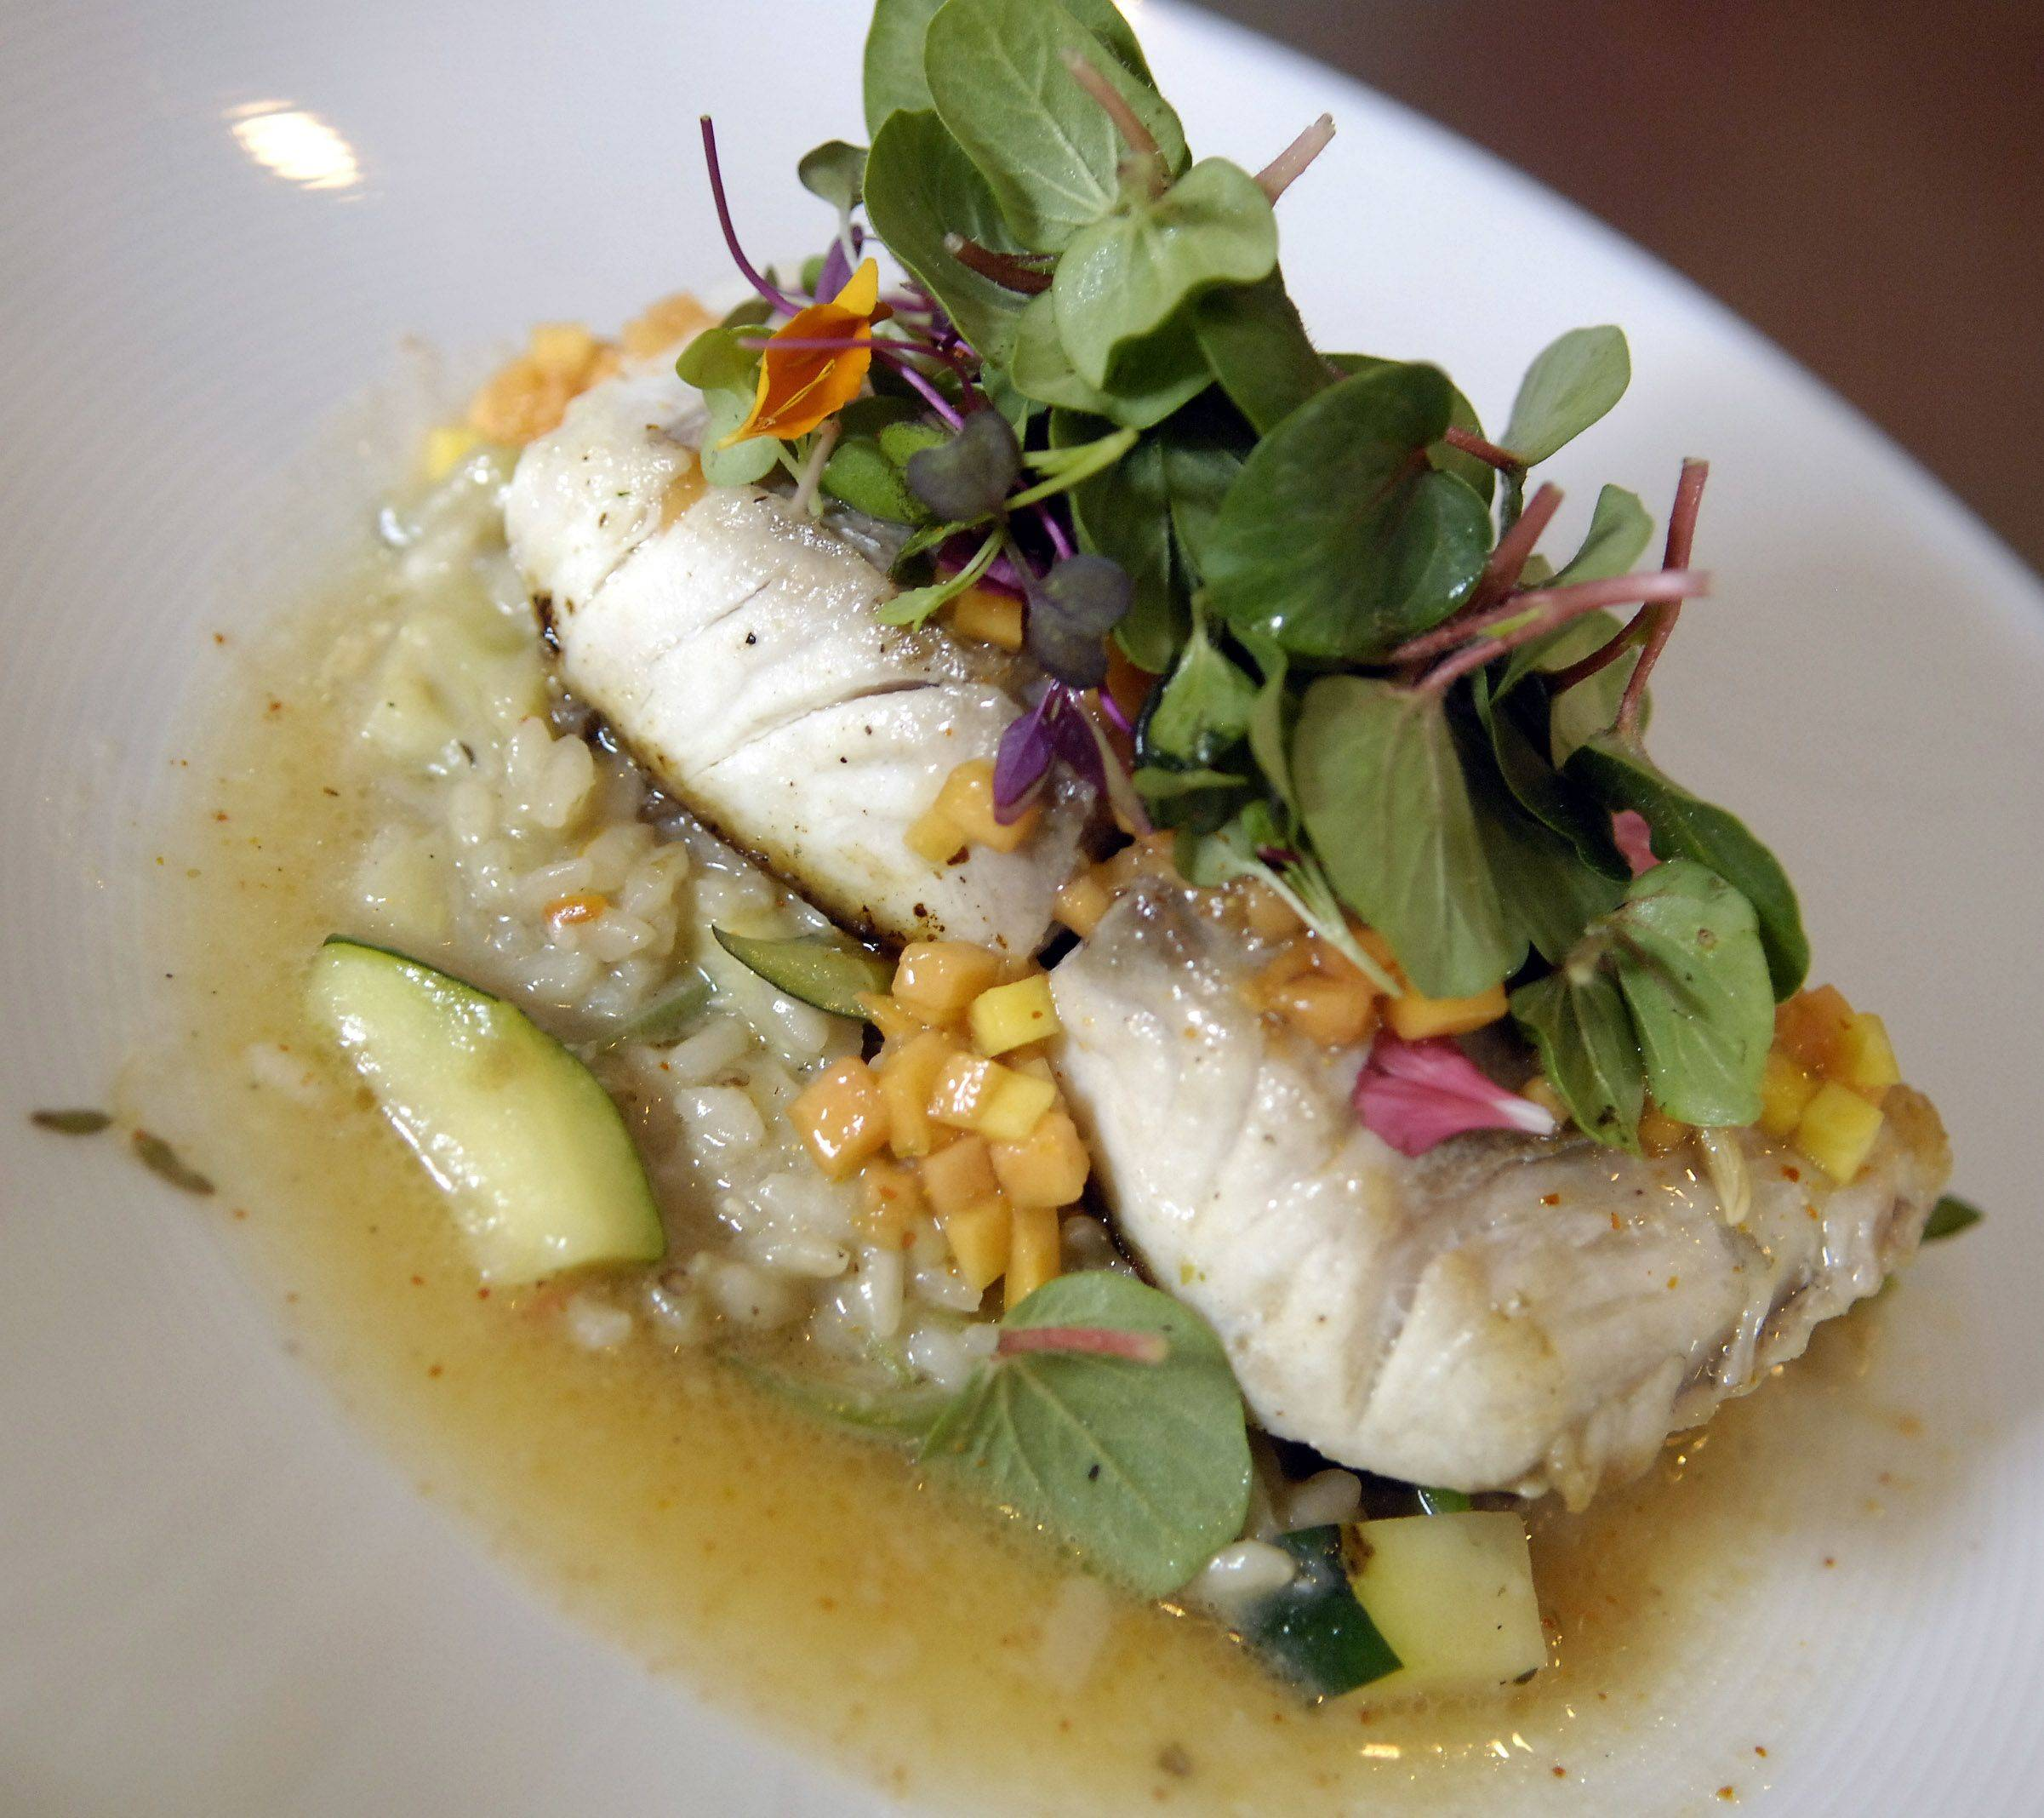 Fresh fish pairs perfectly with vegetable risotto in a lemon vinaigrette from Isacco Kitchen in St. Charles.